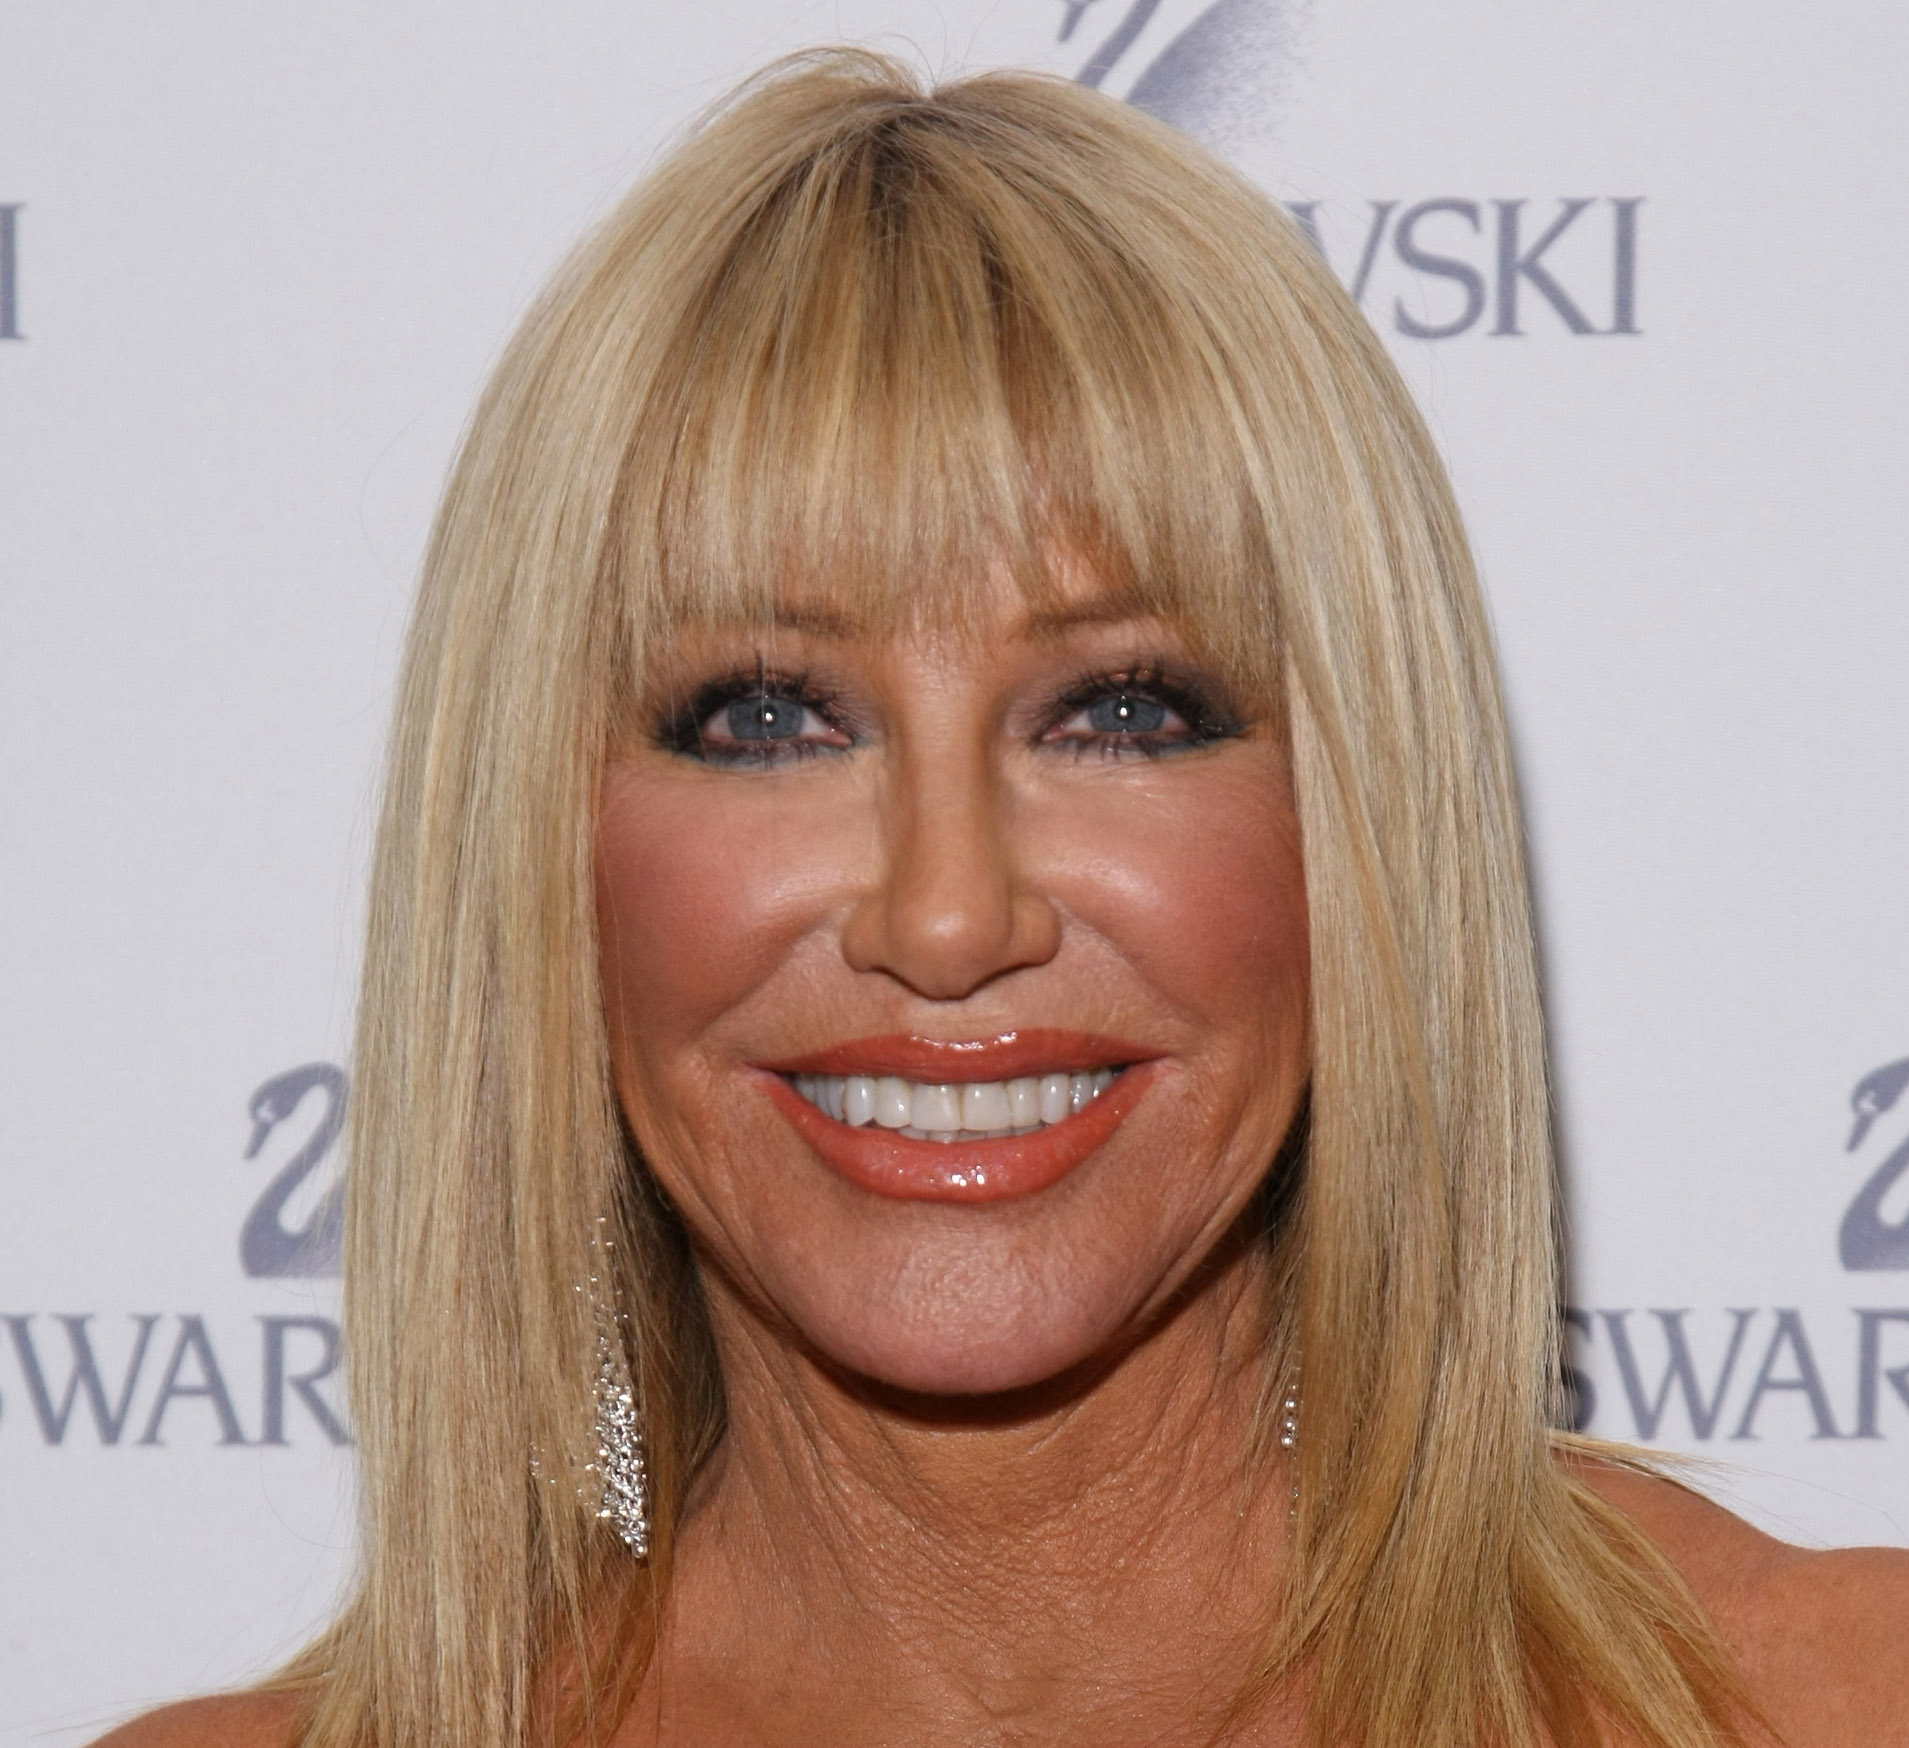 Suzanne Somers Facelift Plastic Surgery Before and After | Celebie